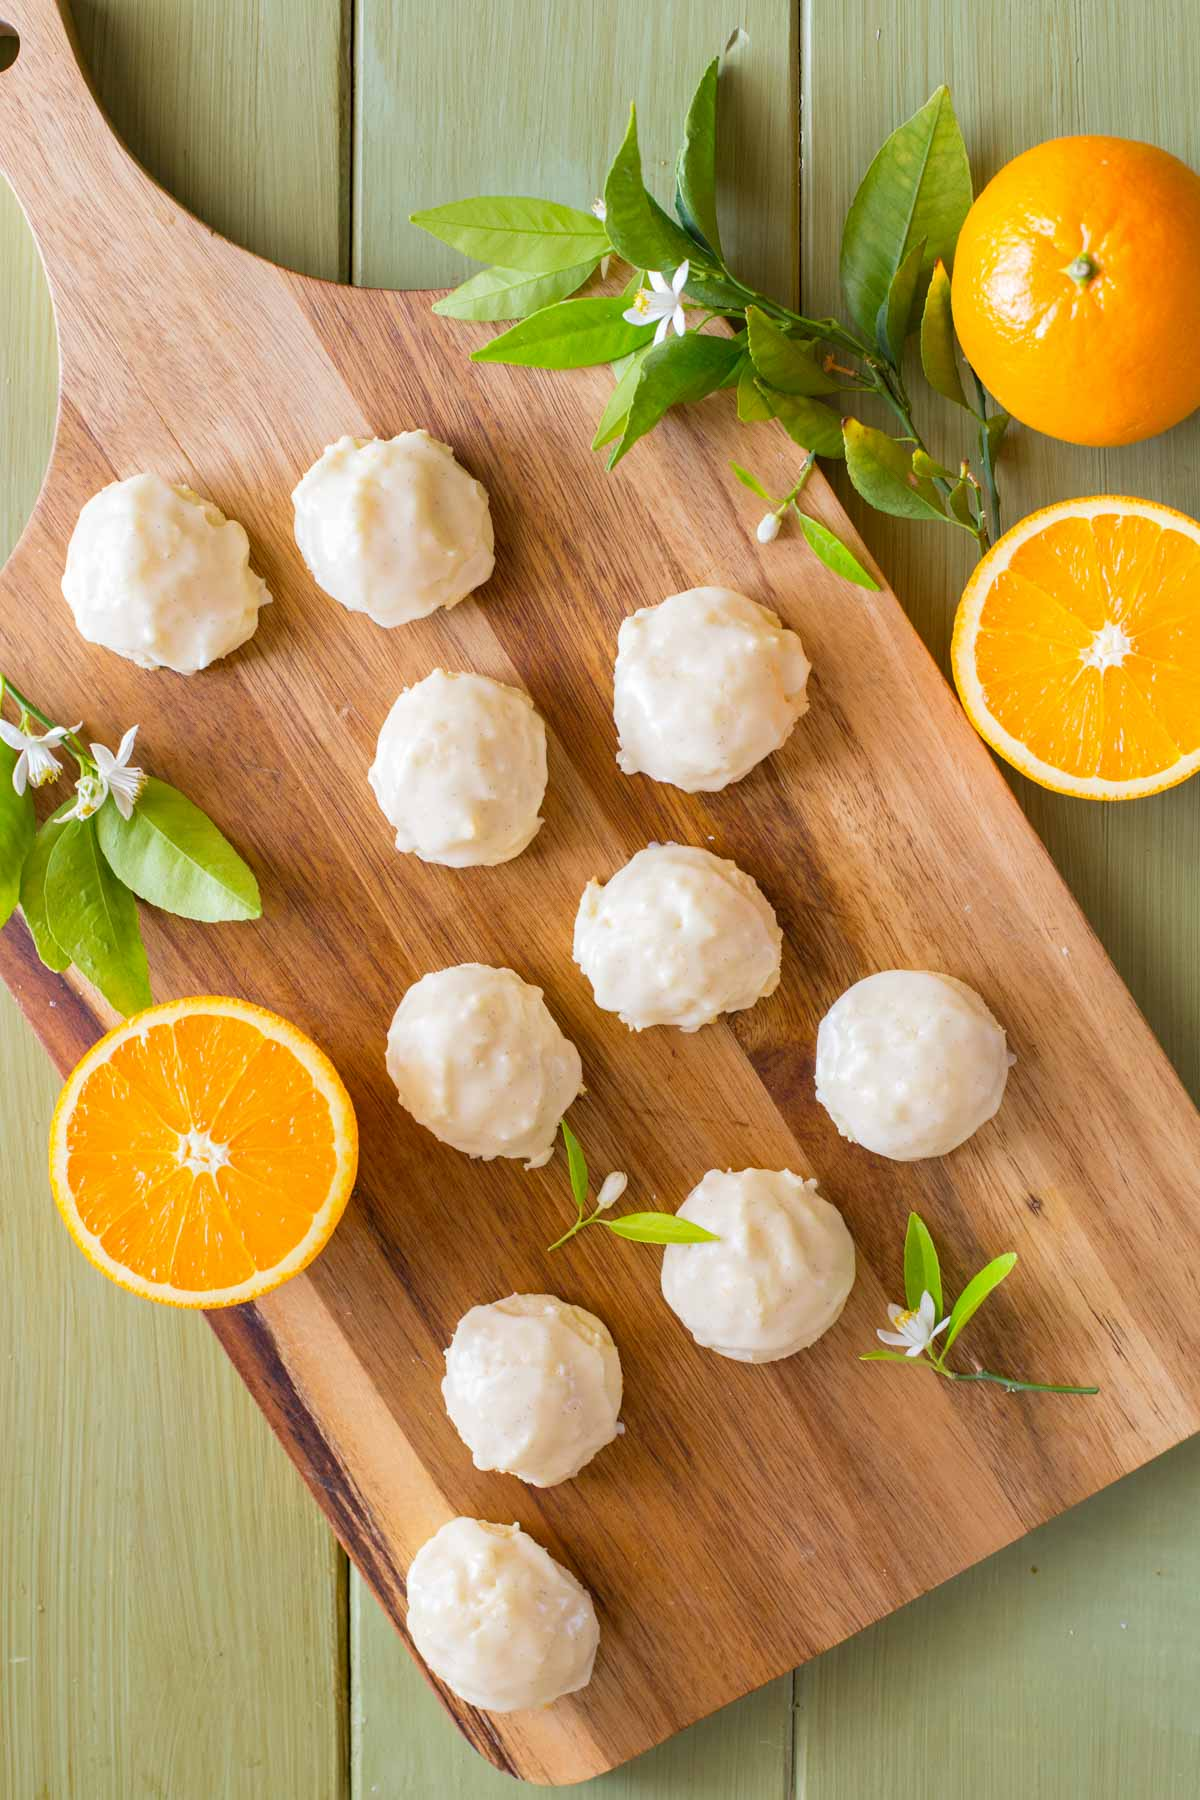 Orange Ricotta Cookies and sliced oranges with orange blossoms shot from above on a wooden cutting board.